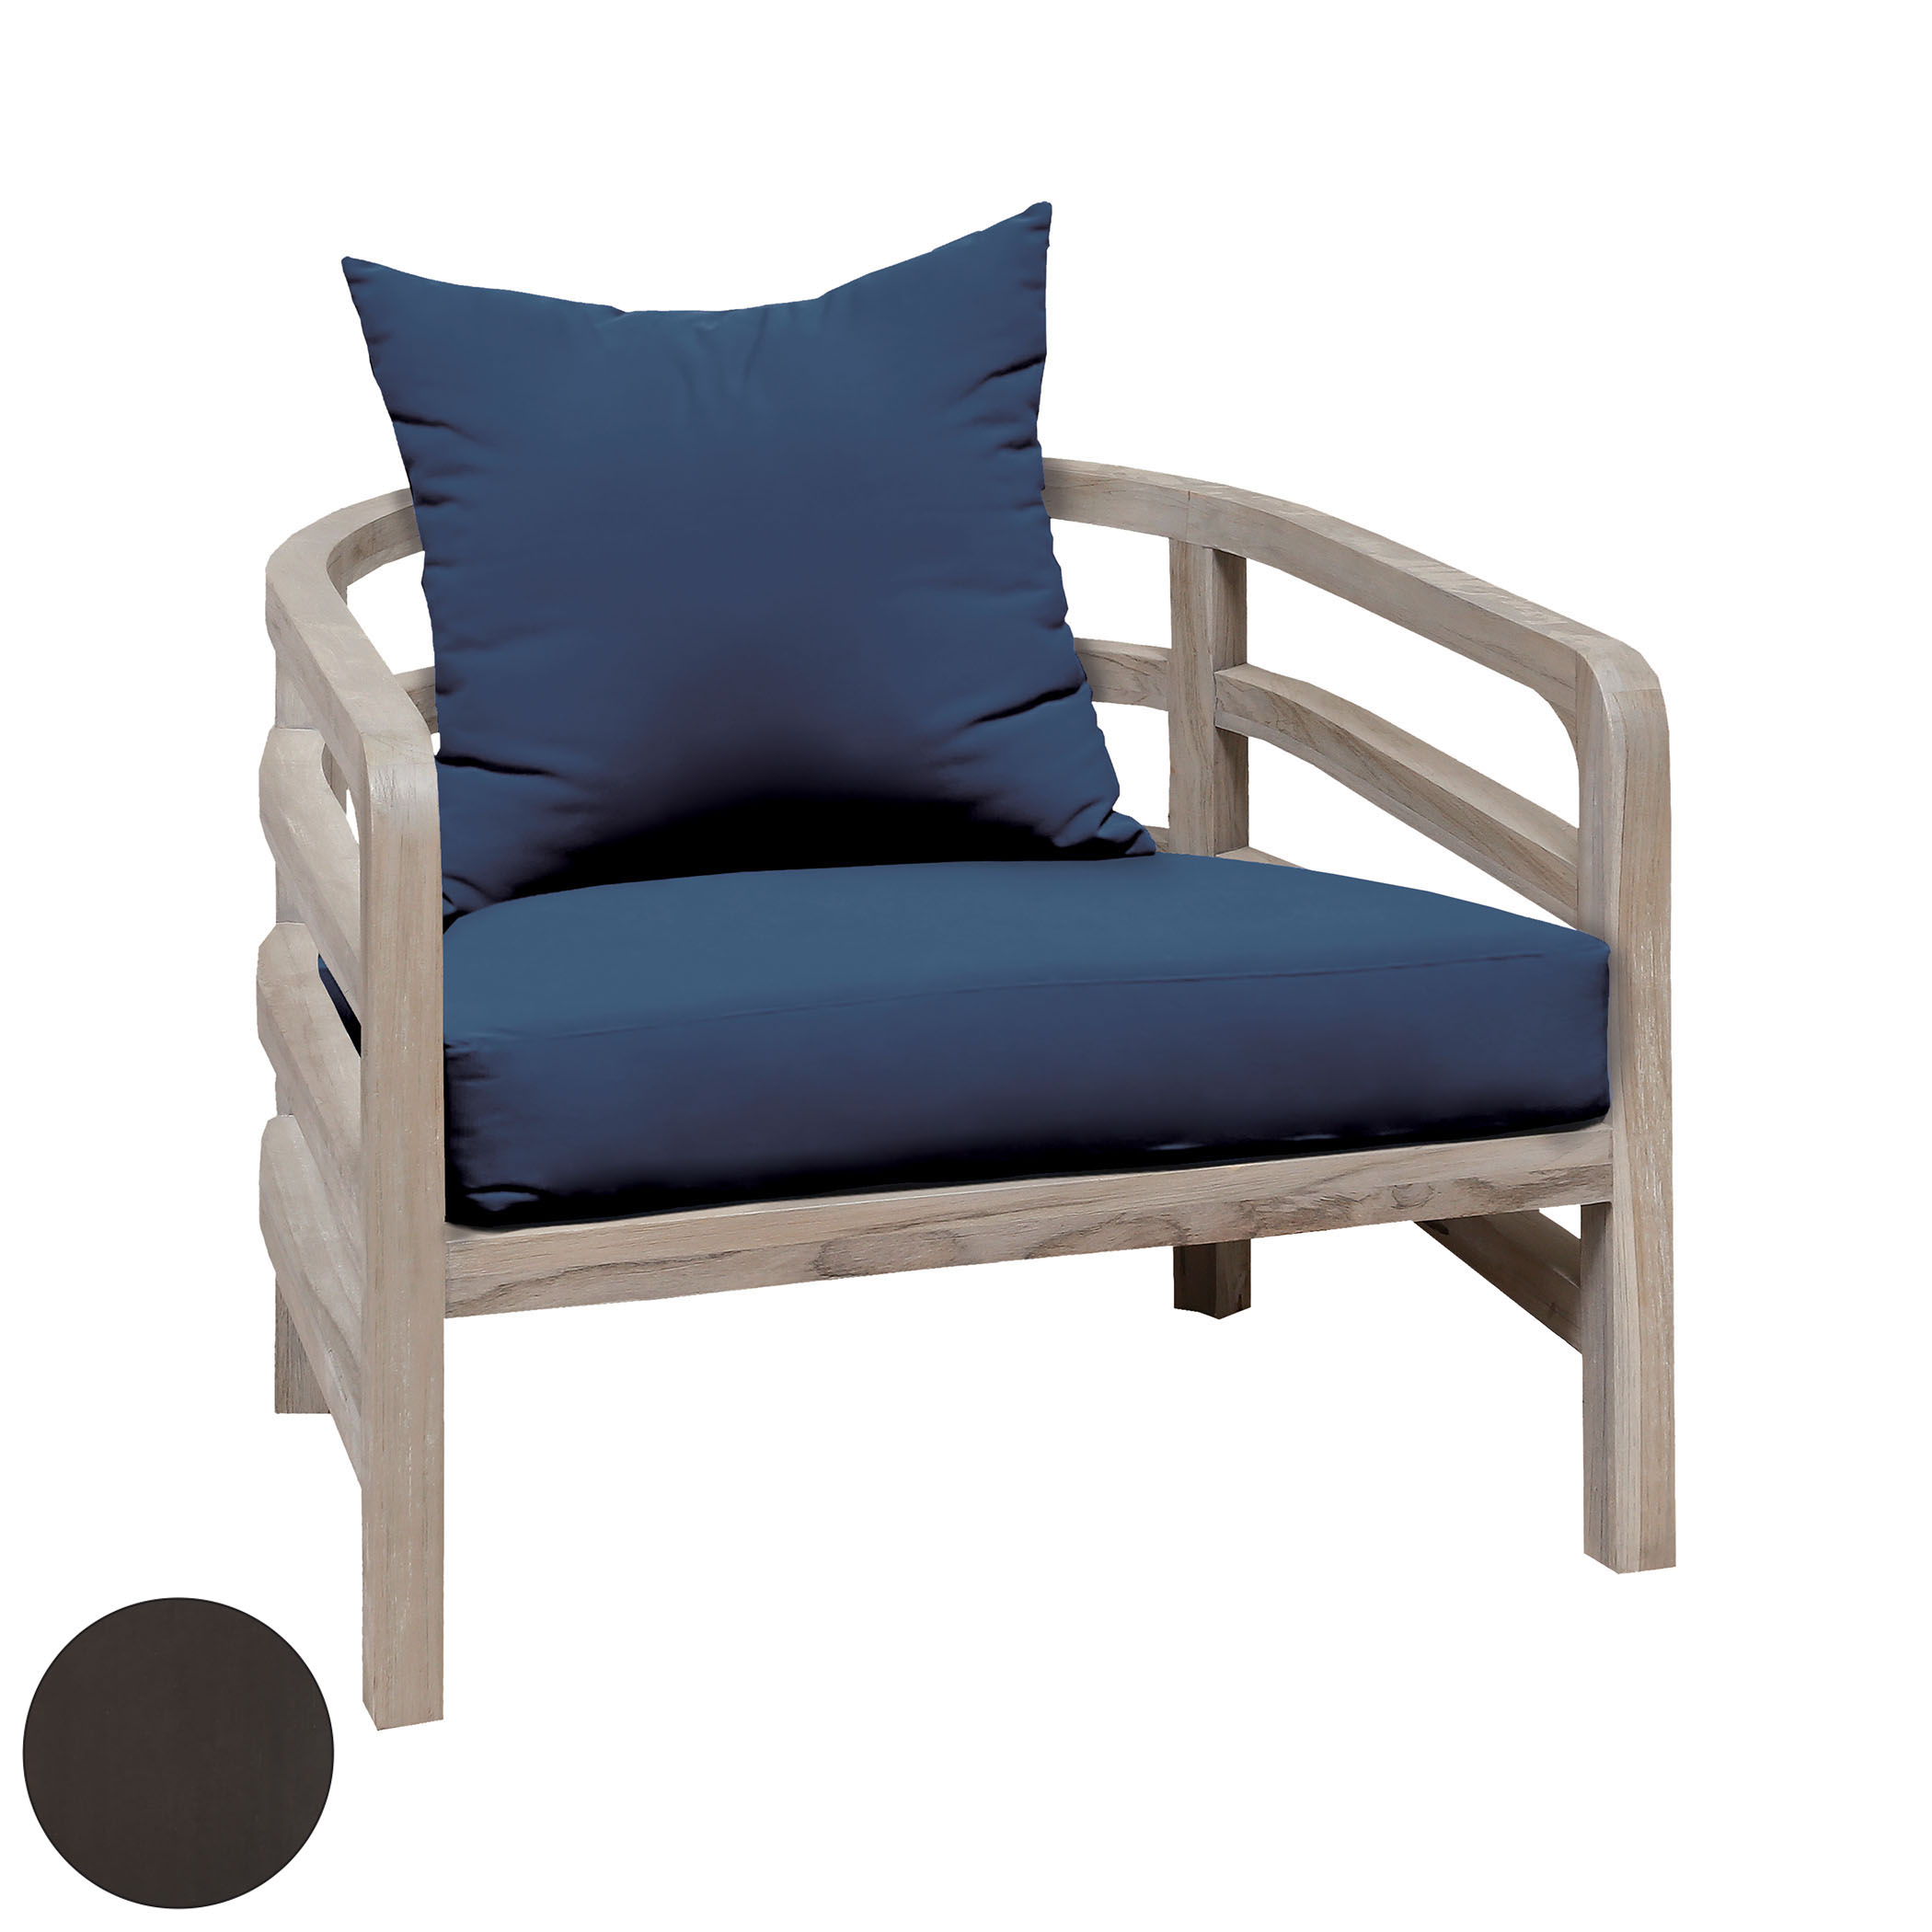 Linley Outdoor Chair 6518006AS | ELK Home